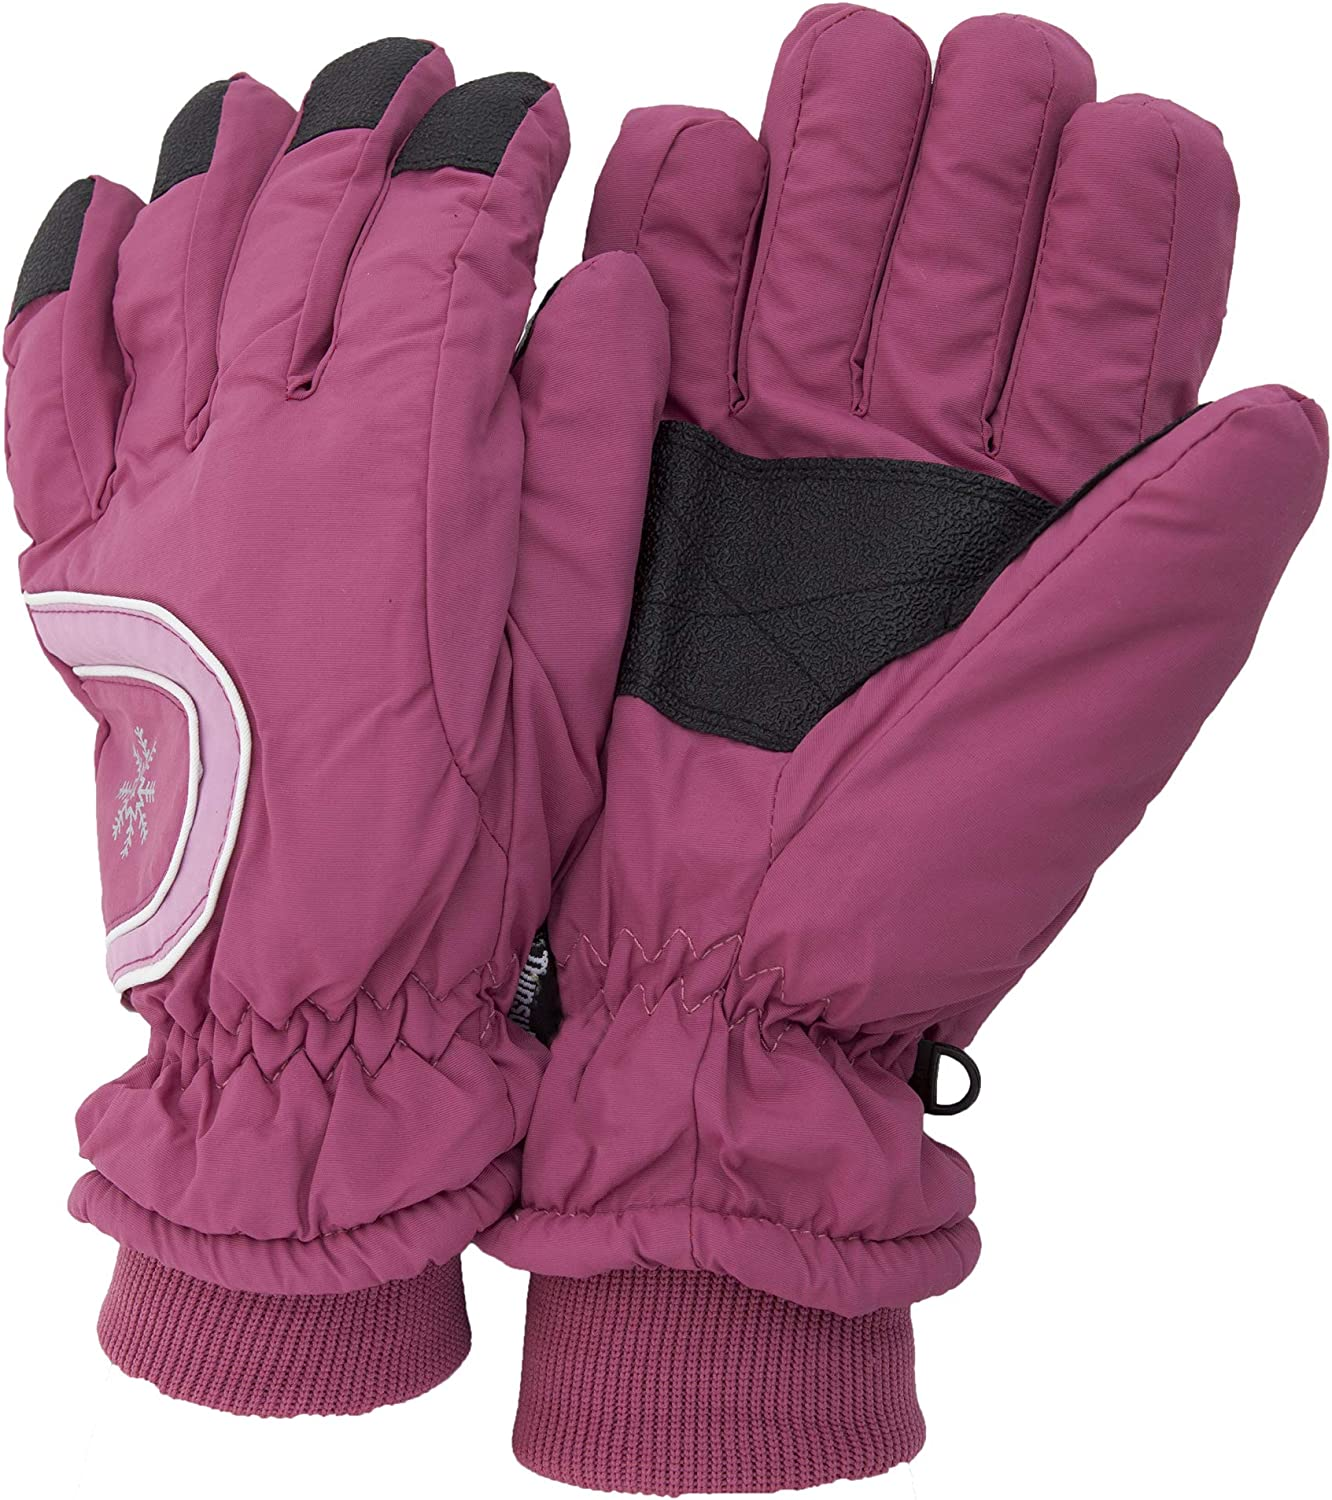 Ladies/Womens Extra Warm Thermal Padded Winter/Ski Gloves With Grip (One Size Fits All) (Pink)